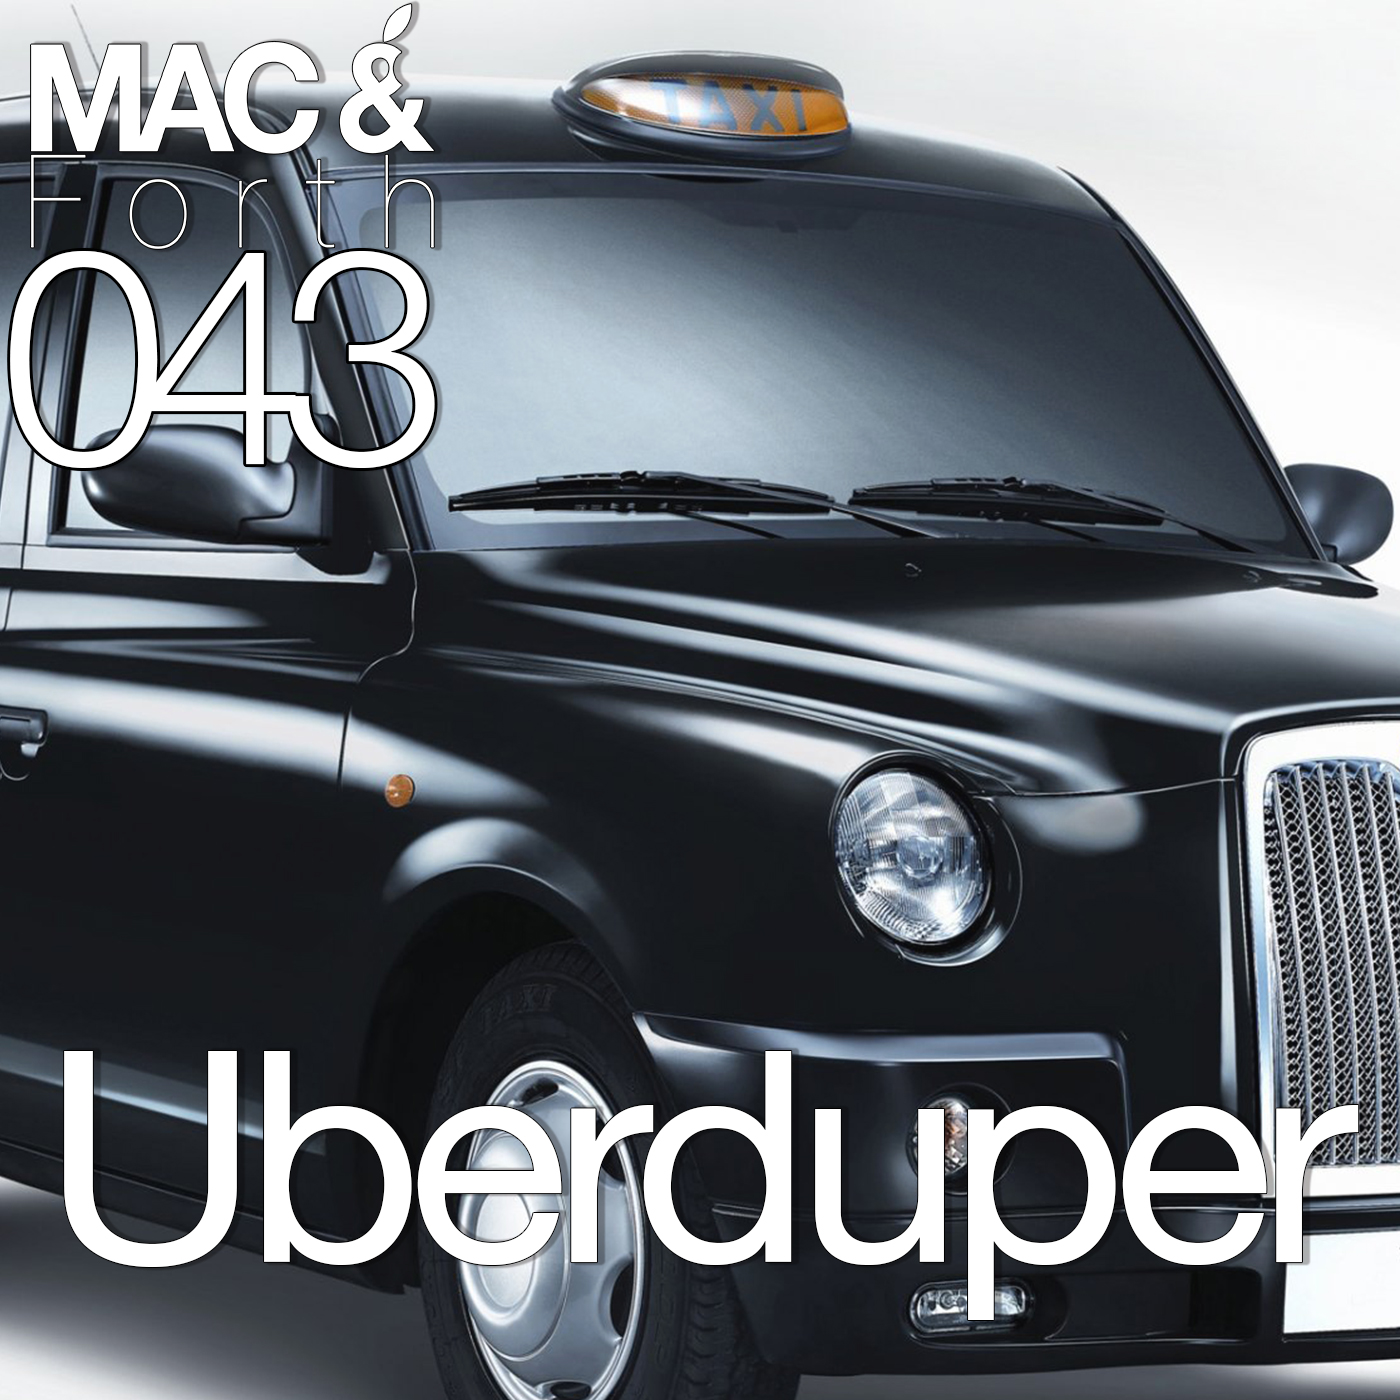 The Mac & Forth Show 043 - Uberduper